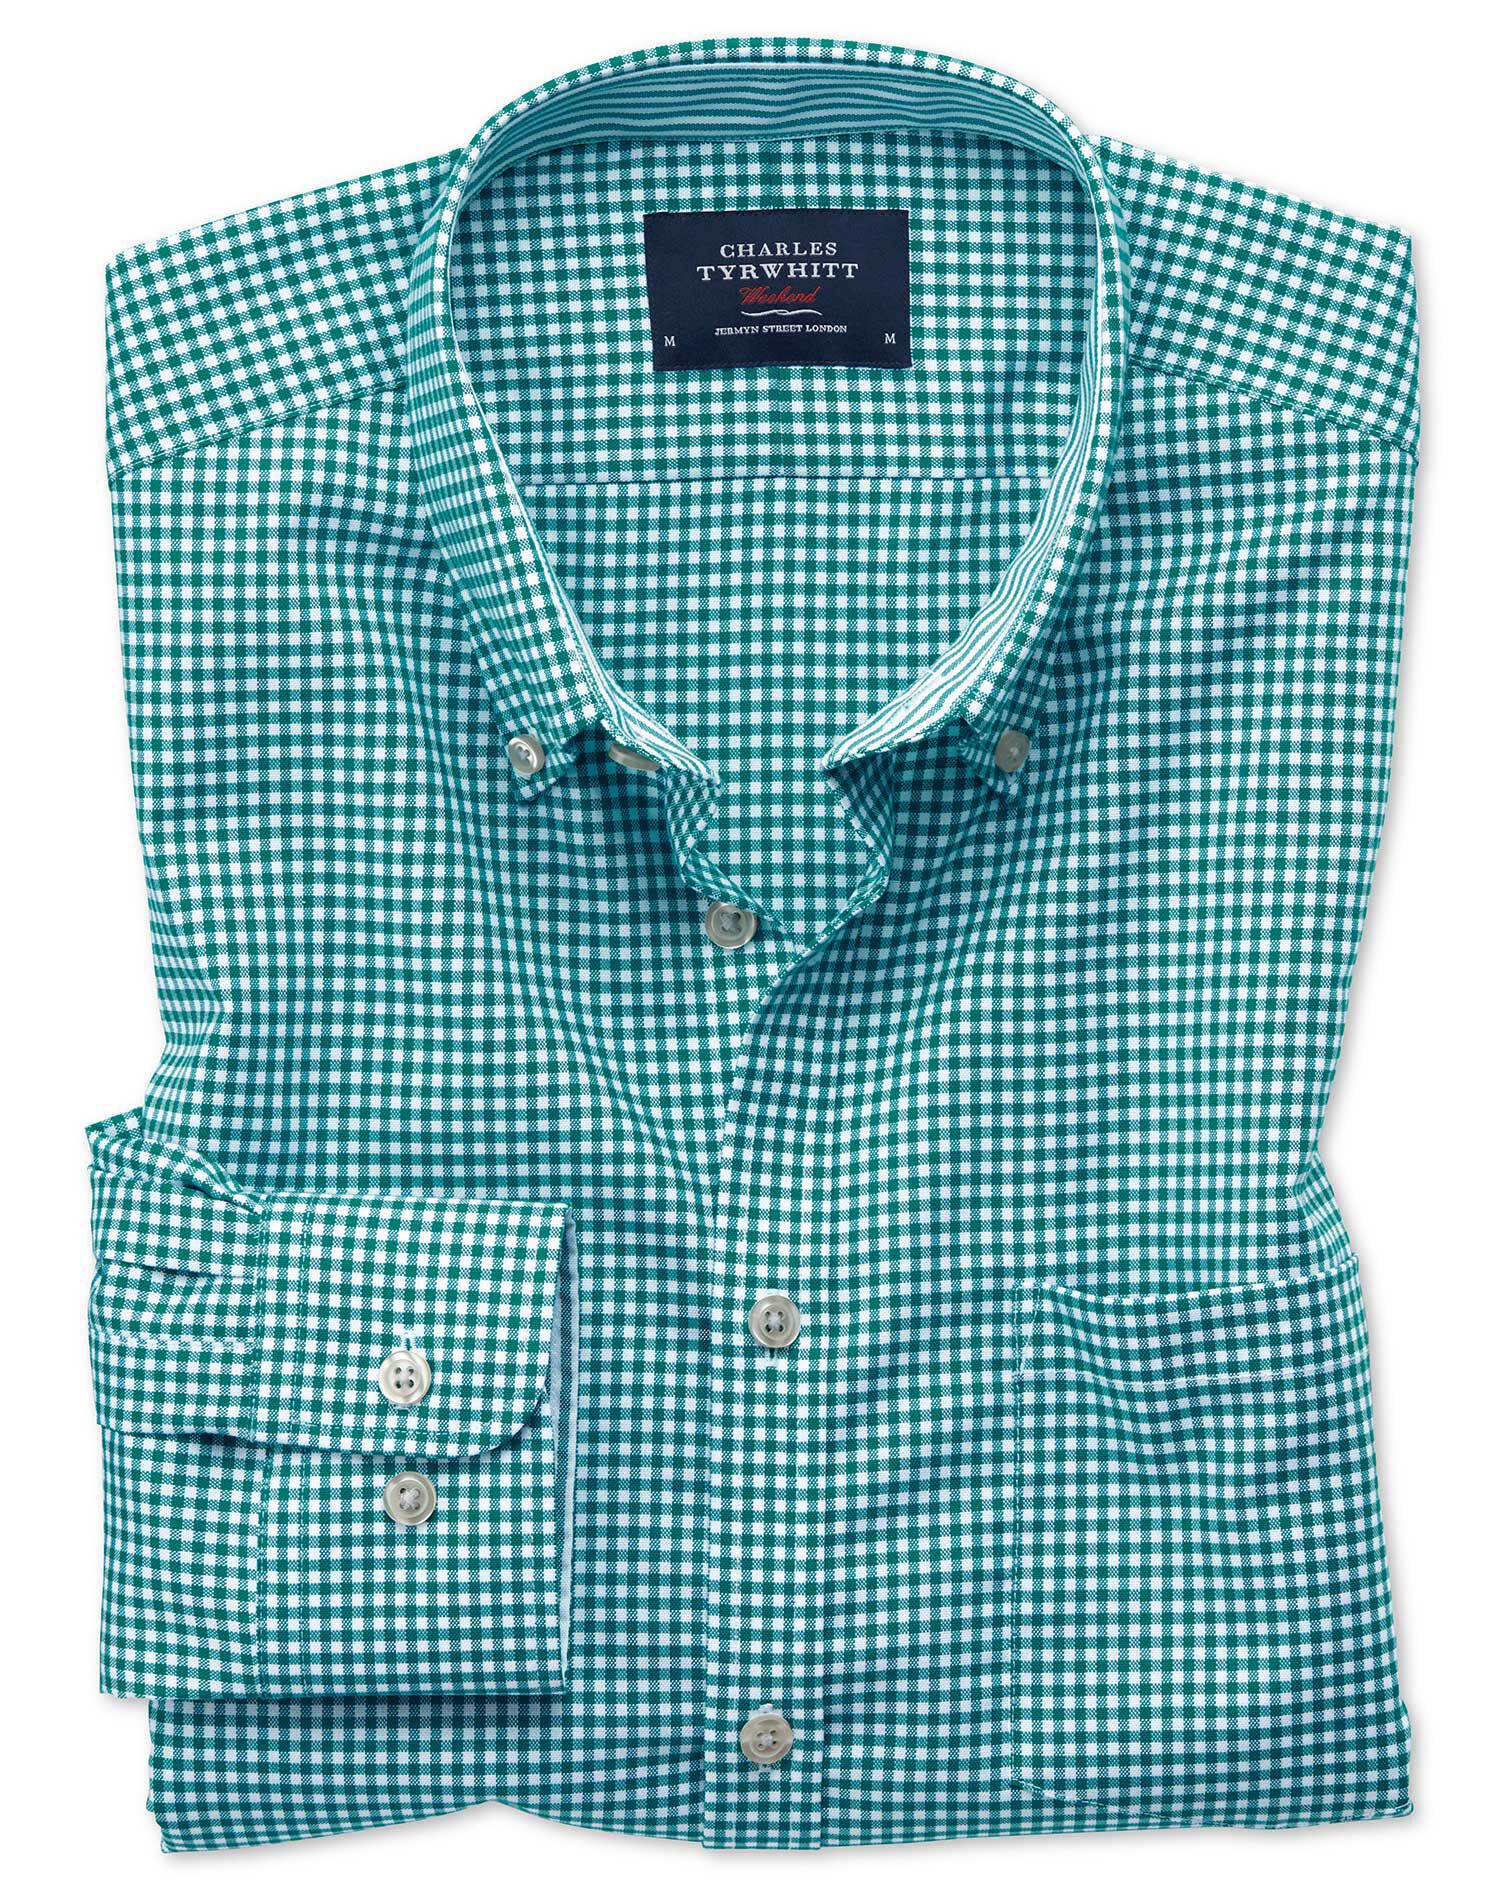 Extra Slim Fit Button-Down Non-Iron Oxford Gingham Green Cotton Shirt Single Cuff Size Large by Char